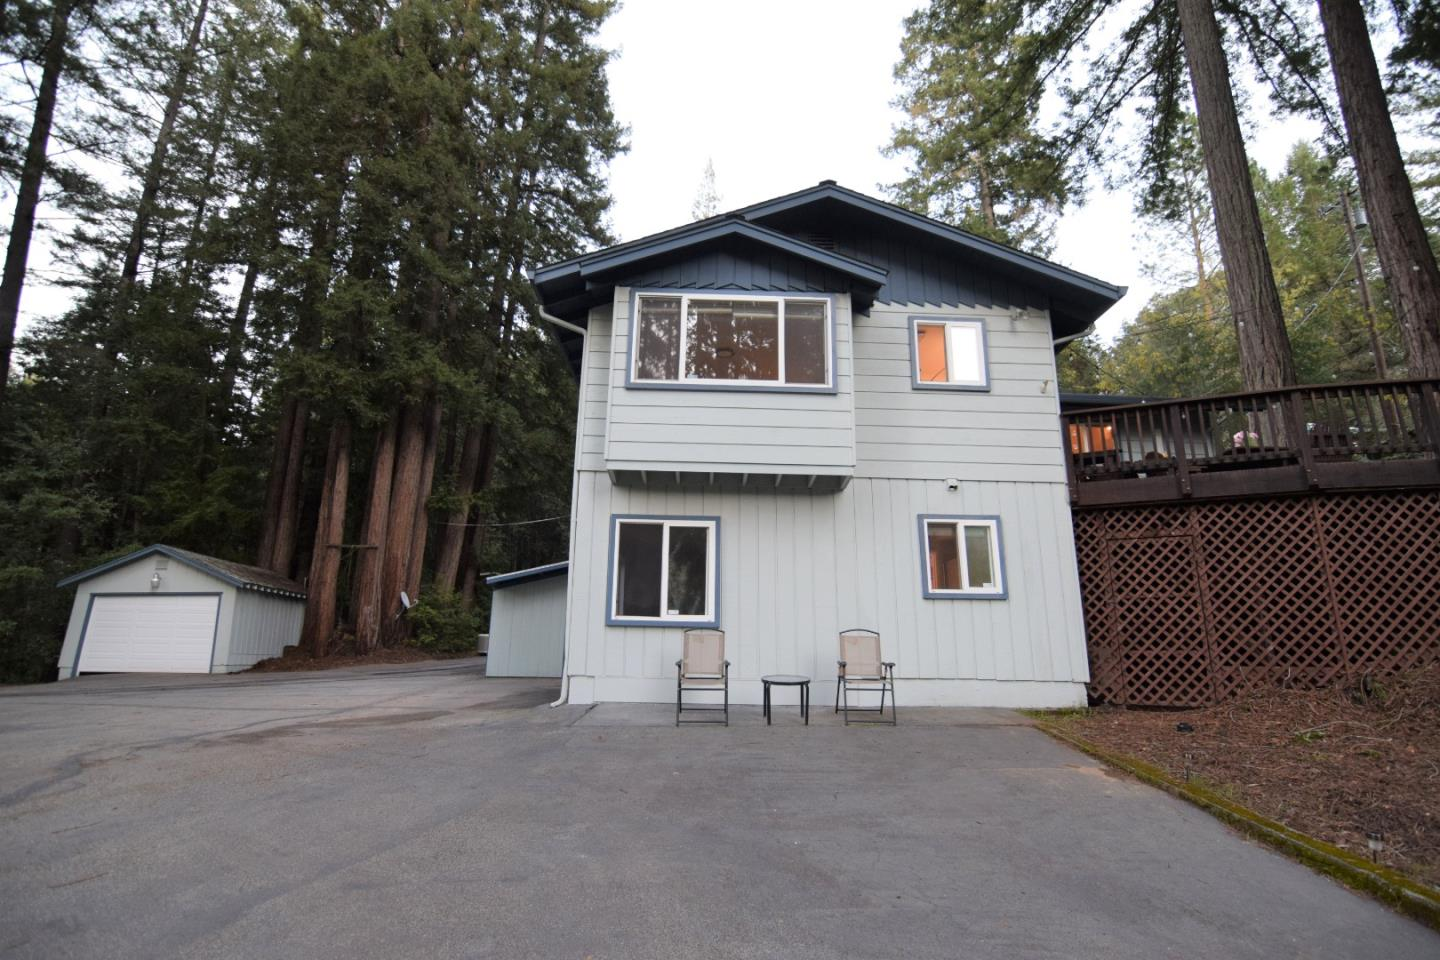 Your Dream Vacation or Permanent Home is await at great Location & Conveniences *Easy to get to, off the beaten path & tucked away in a Resort & Park like Setting w/Breathtaking Views of natural beauty, Majestic Redwoods, Romantic Hiking Trails Down to the Creek *3-5 minutes to Downtown Boulder Creek & Elementary *Good Cell-Phone Reception, Comcast & WiFi Ready *Large Circular Driveway & Tons of Parking *Lots of Sunshine, Amenities, and Upgrades *Huge Deck w/Great Views of Redwoods, perfect for Outdoor Living/Entertaining/Weddings *Enter the House on ground level to all 4 bedrooms & 2 bathrooms *1st Level offers an extra LG Bedroom, Full bath/Shower, LG Family Rm w/a pellet stove, a Rec Rm, Wine Cellar, Bonus Rm, Laundry & more *2nd Level offers a LG Living Rm, Dining Area, Kitchen, Breakfast Bar, 3 Bedrooms & Full bath/Tub *Nearby Golf Courses, Wineries, Restaurants, Shops, Markets, Roaring Camp, Big Basin Redwoods State Park & other Parks *Close to Santa Cruz, Silicon Valley & others